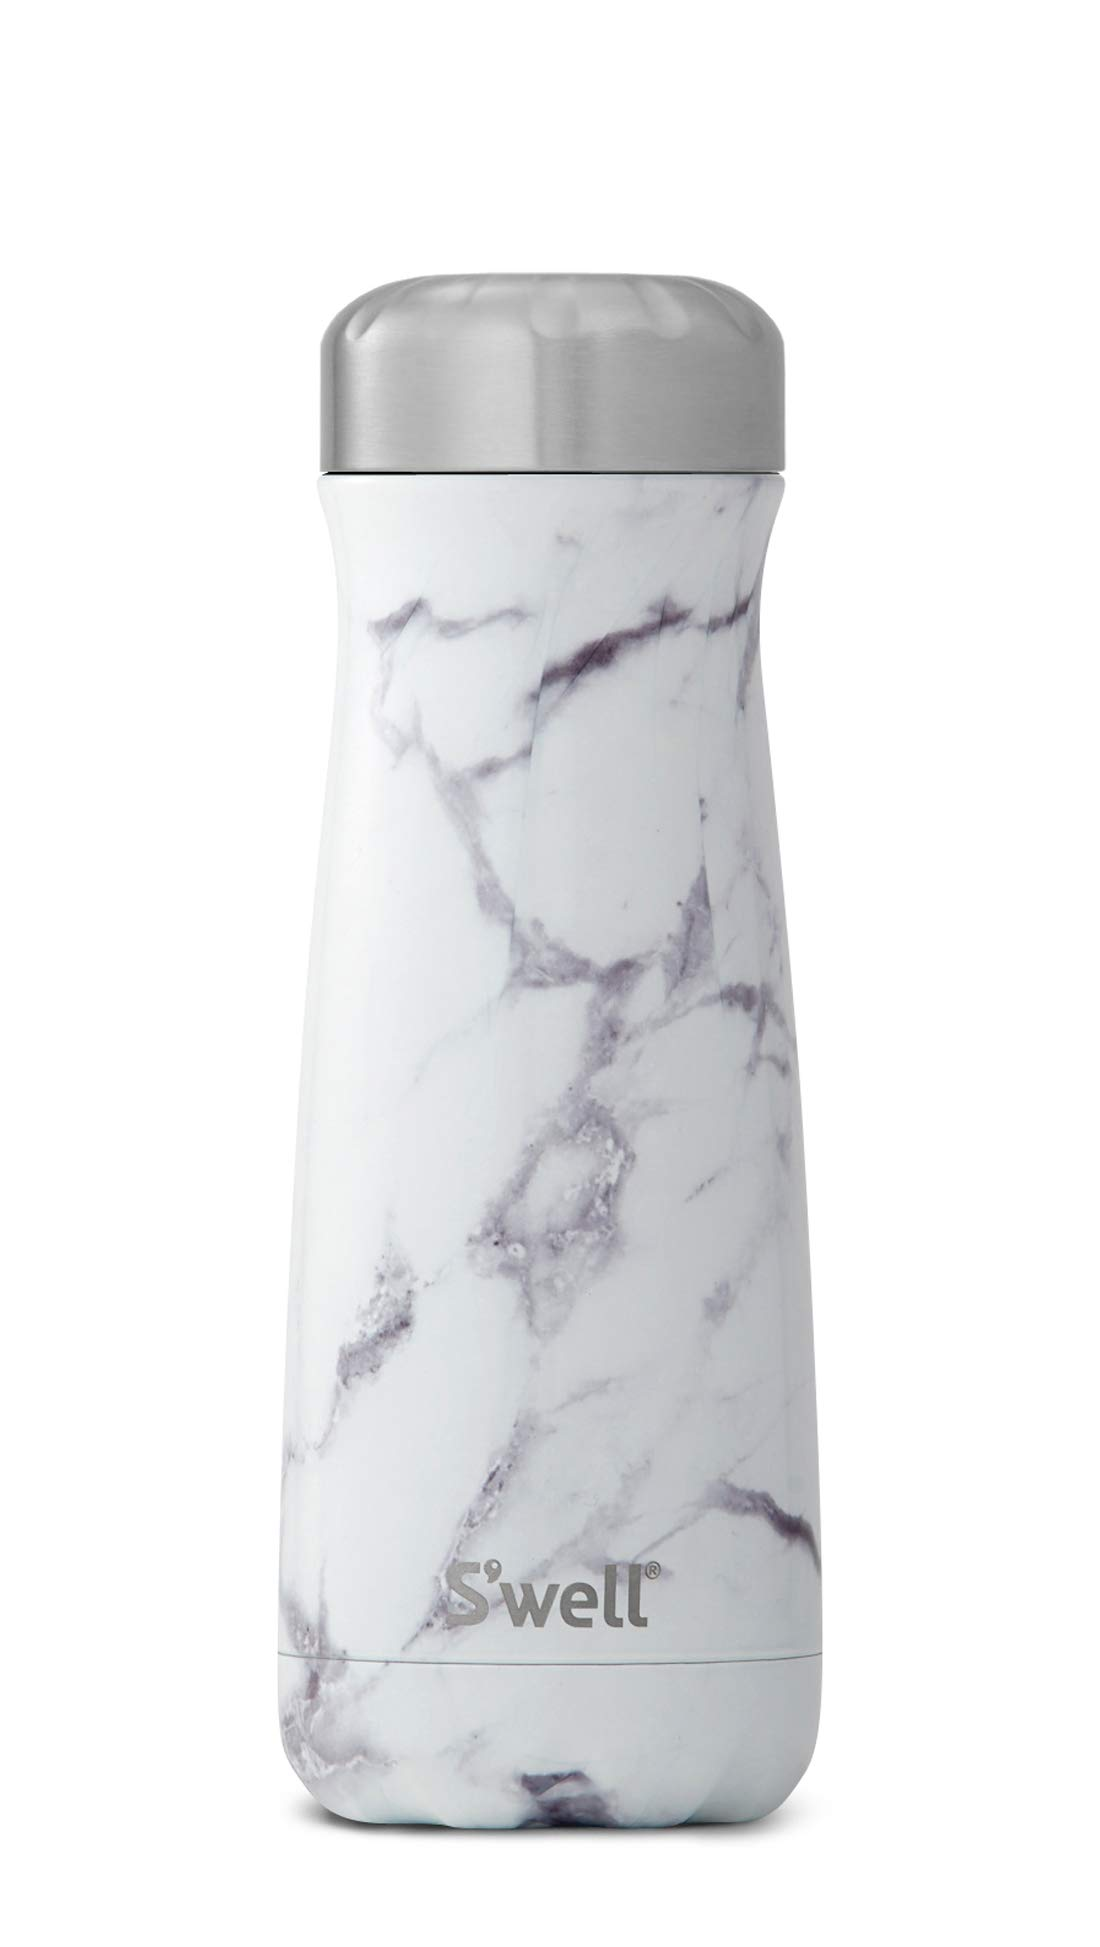 S'well 10320-B17-00910 Stainless Steel Travel Mug, 20oz, White Marble by S'well